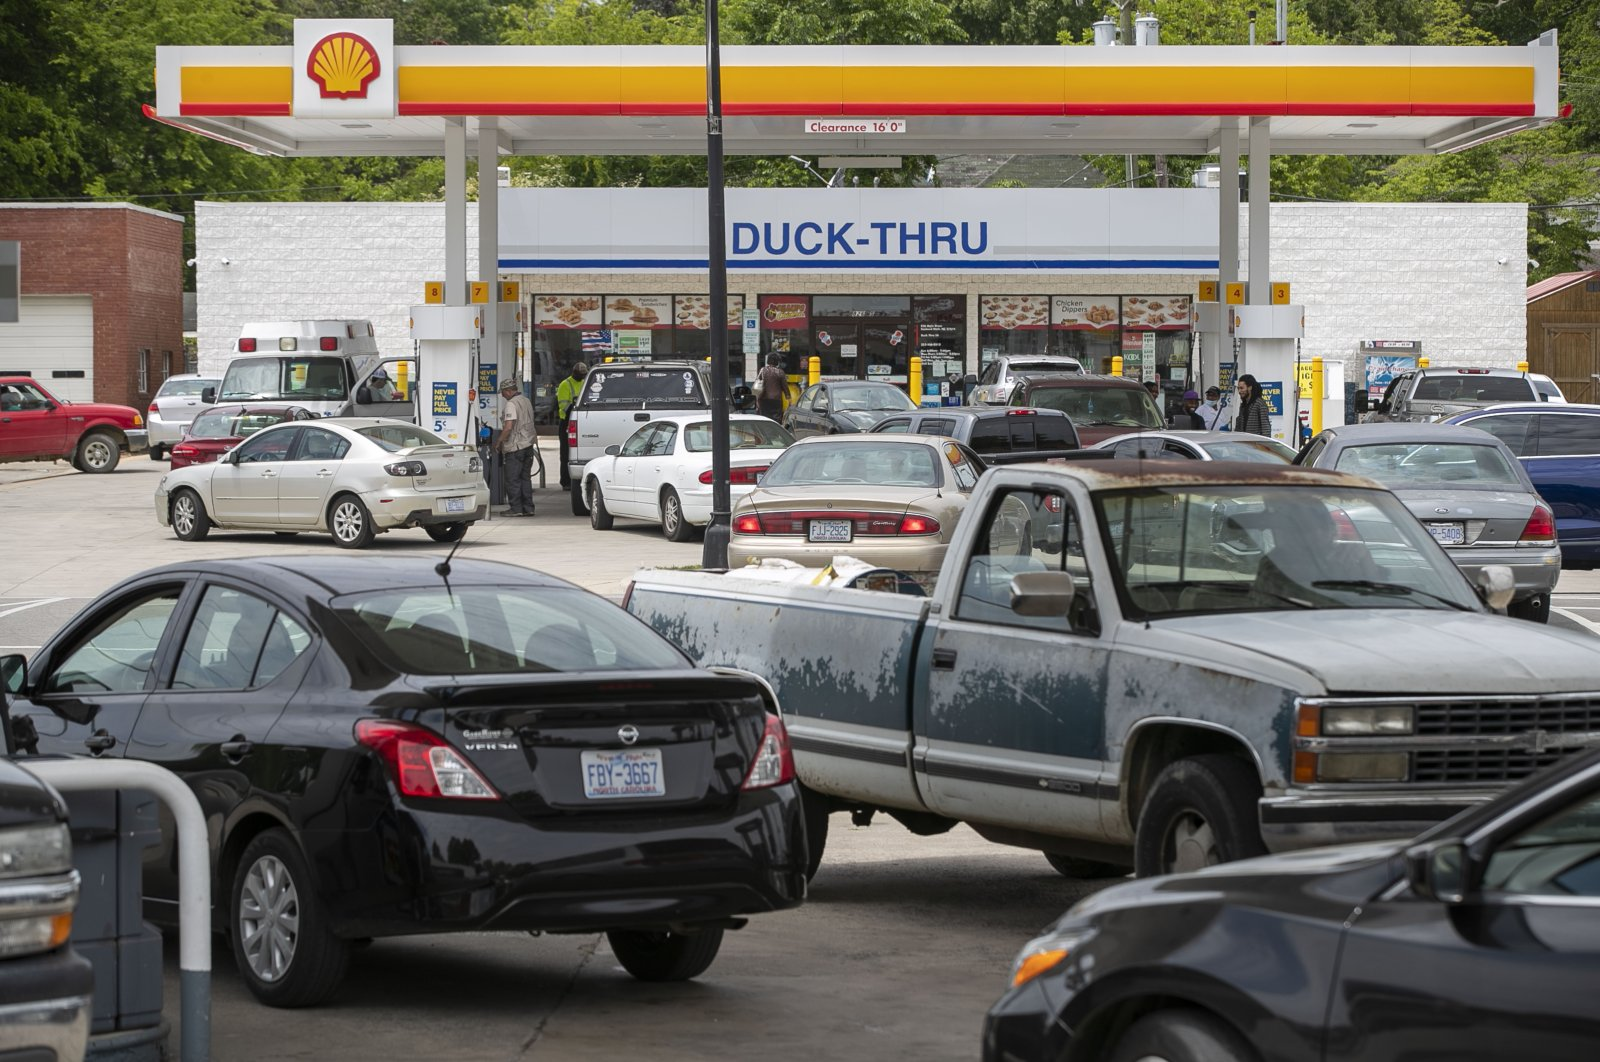 Customers fill up their vehicles with fuel at the Cupboard Food Store (foreground) and the Duck-Thru across in Scotland Neck, North Carolina, U.S., Tuesday, May 11, 2021. (AP Photo)